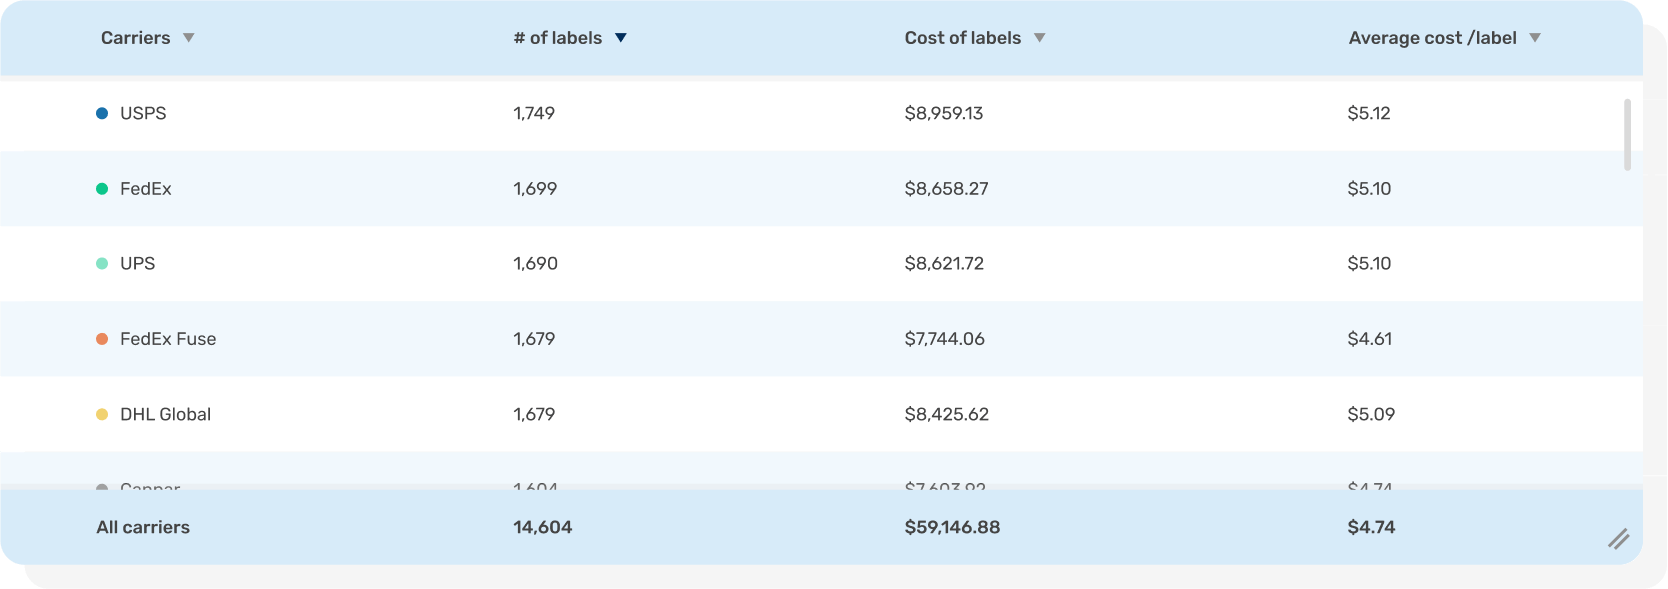 Desktop sized table of carriers, number of labels purchased, total cost, and average cost per label on EasyPost's Analytics dashboard page